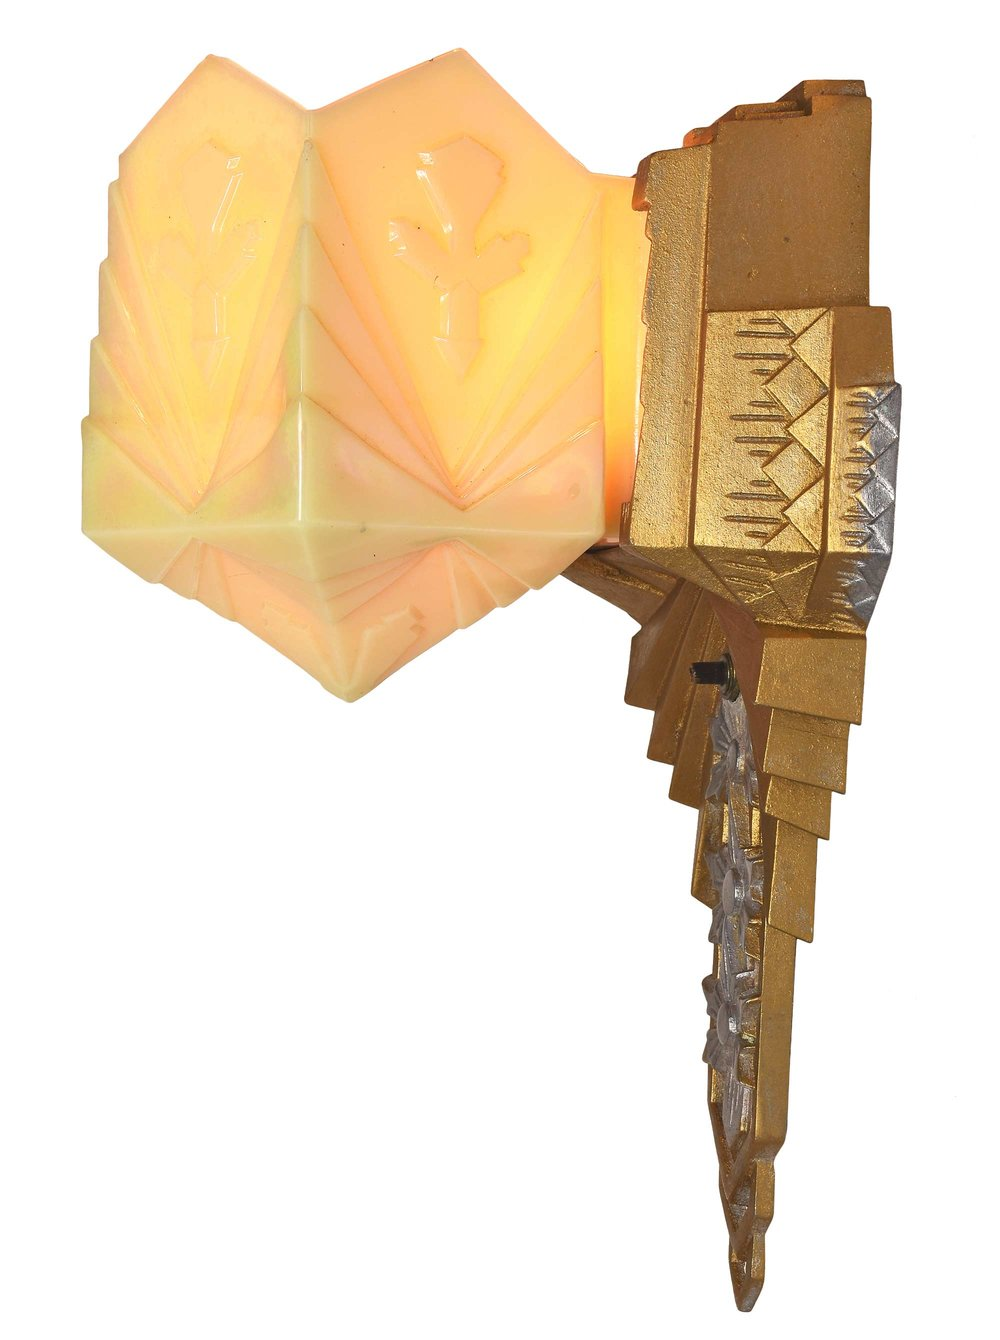 46651-art-deco-sconce-with-molded-custard-glass-lit.jpg